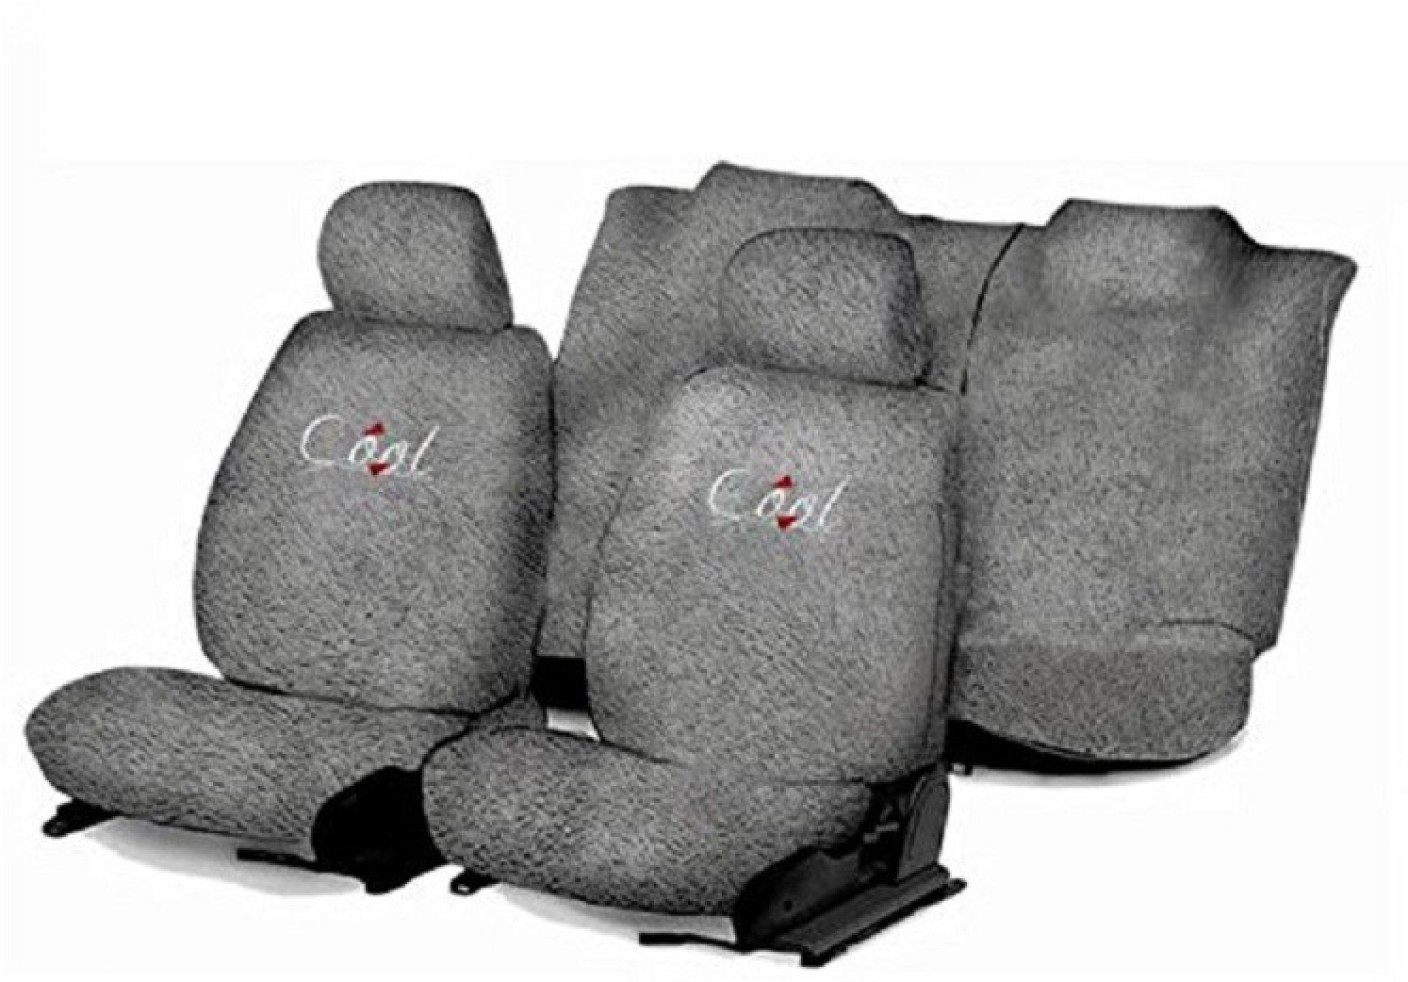 jmjw sons cotton car seat cover for maruti omni price in india buy jmjw sons cotton car. Black Bedroom Furniture Sets. Home Design Ideas